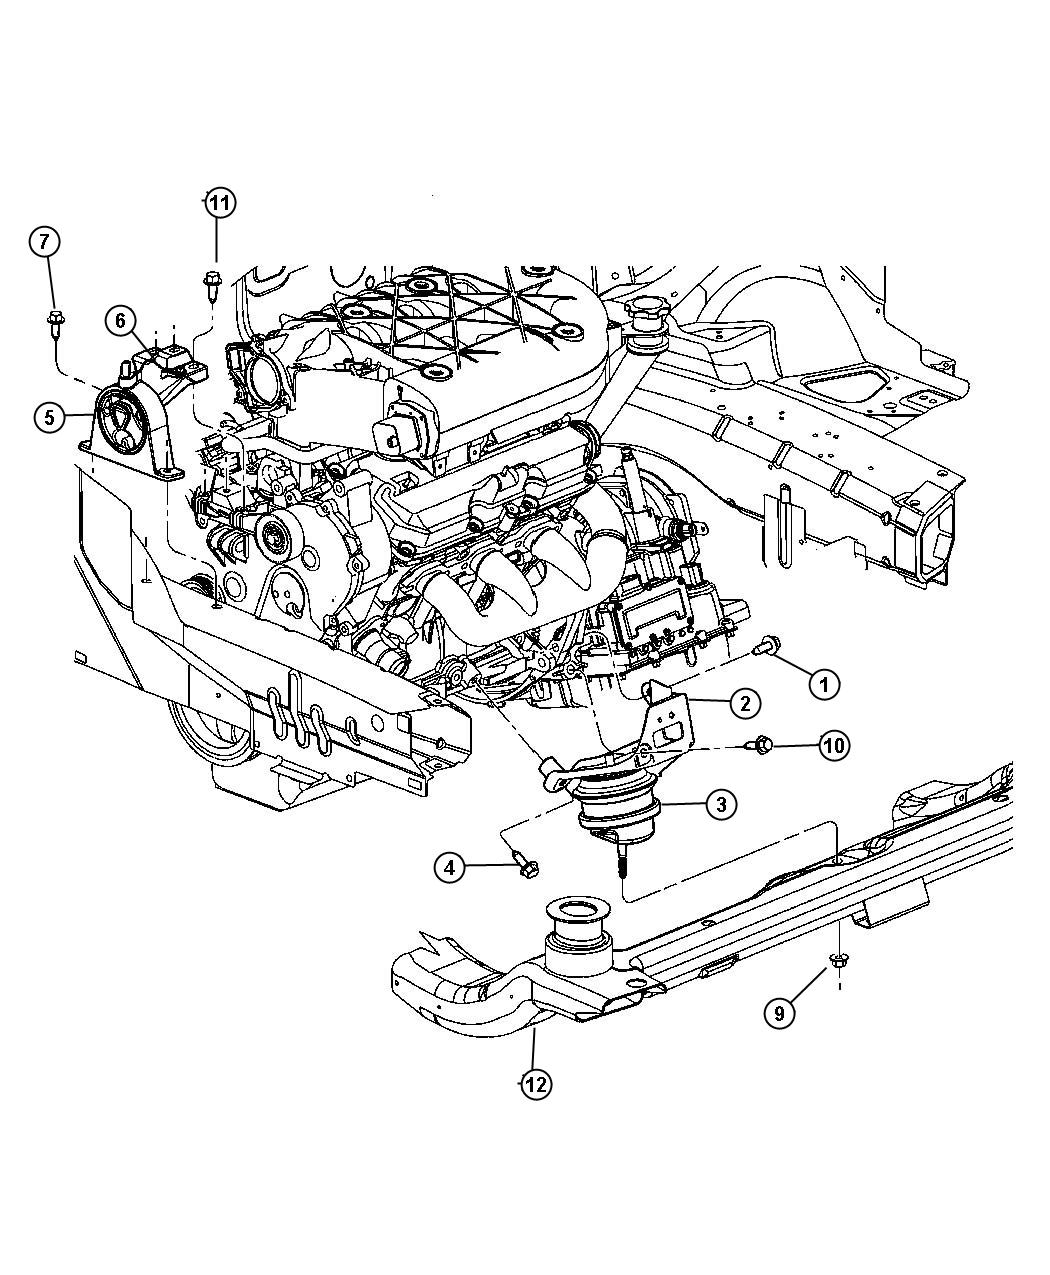 05 chrysler pacifica engine diagram